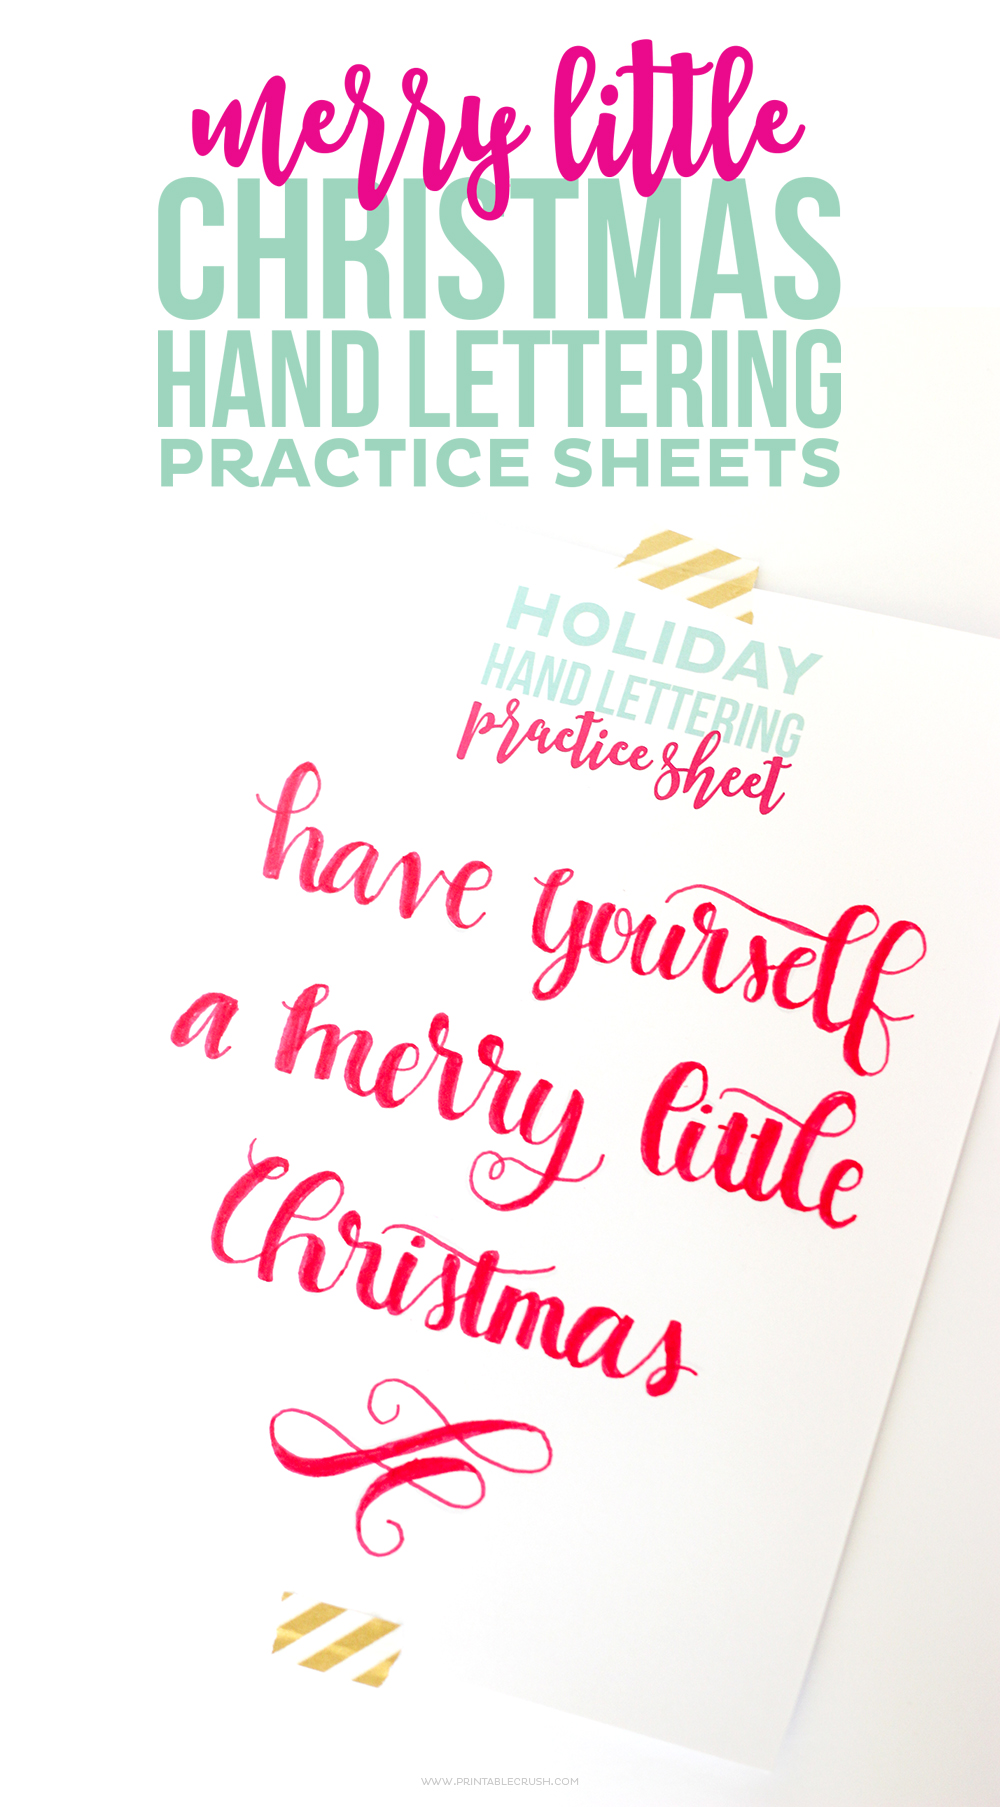 Download These FREE Printable Christmas Hand Lettering Practice Sheets Will Help You Create The Perfect